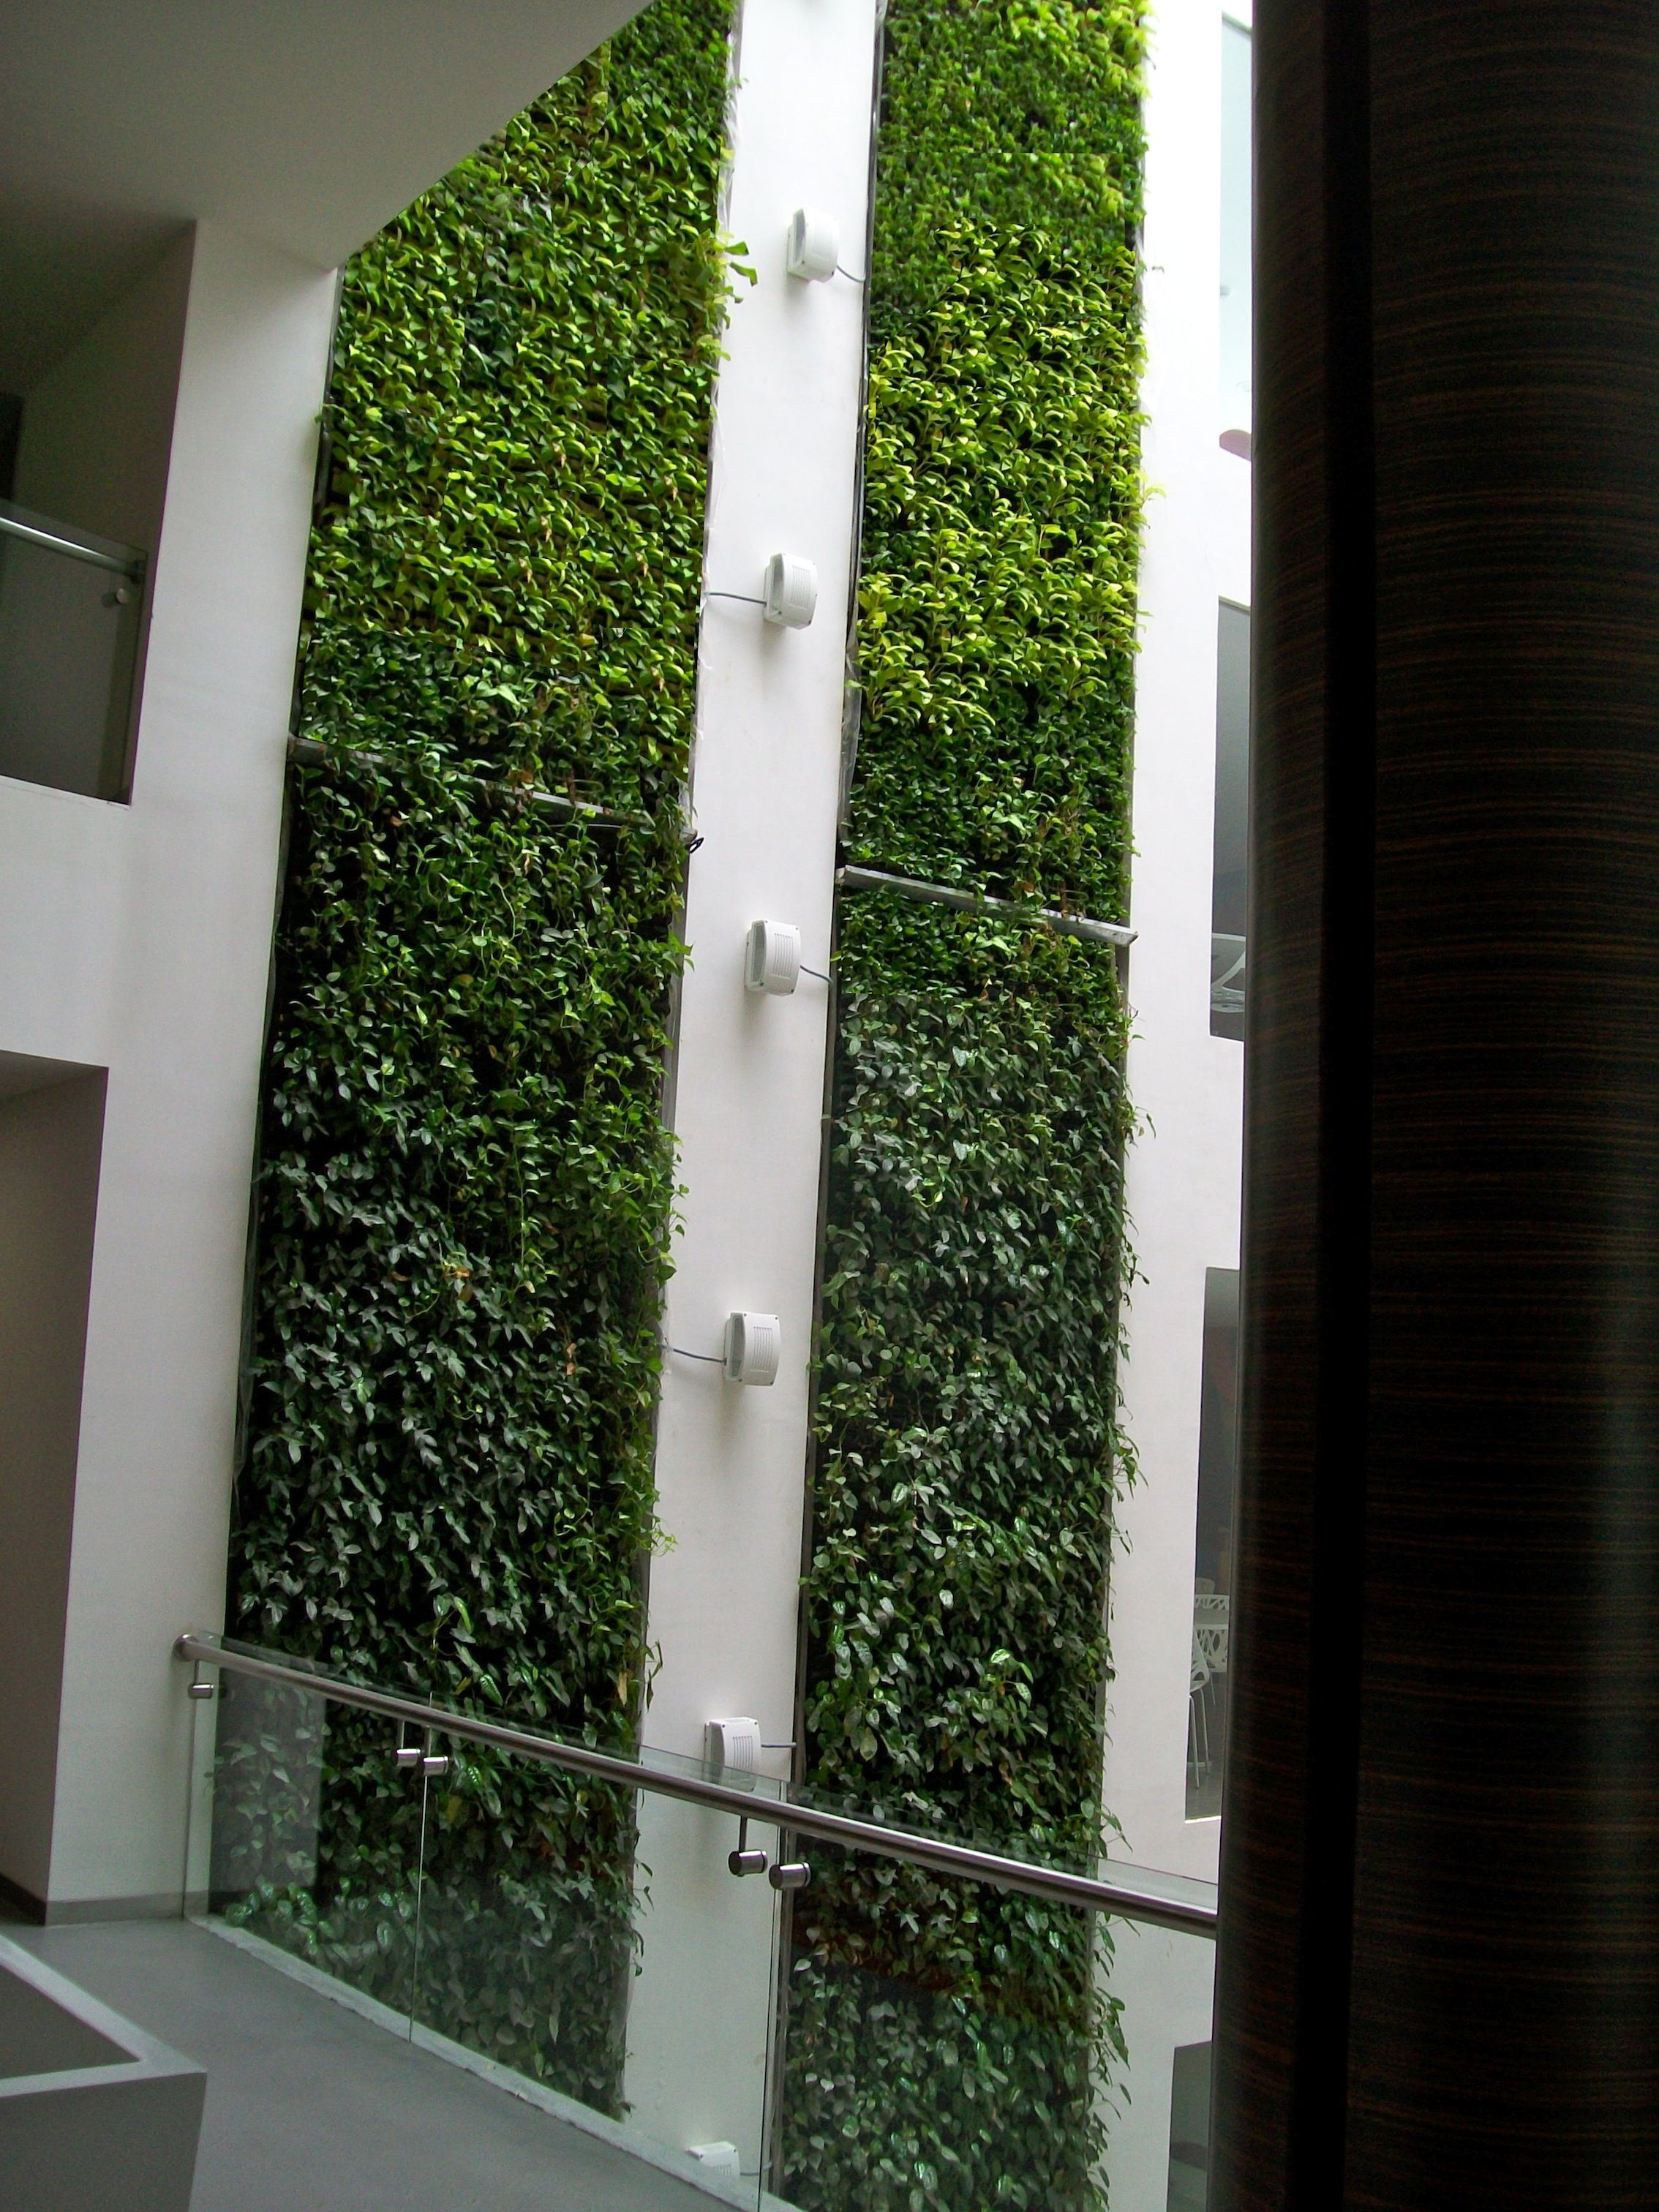 Medium Crop Of Wall Indoor Garden